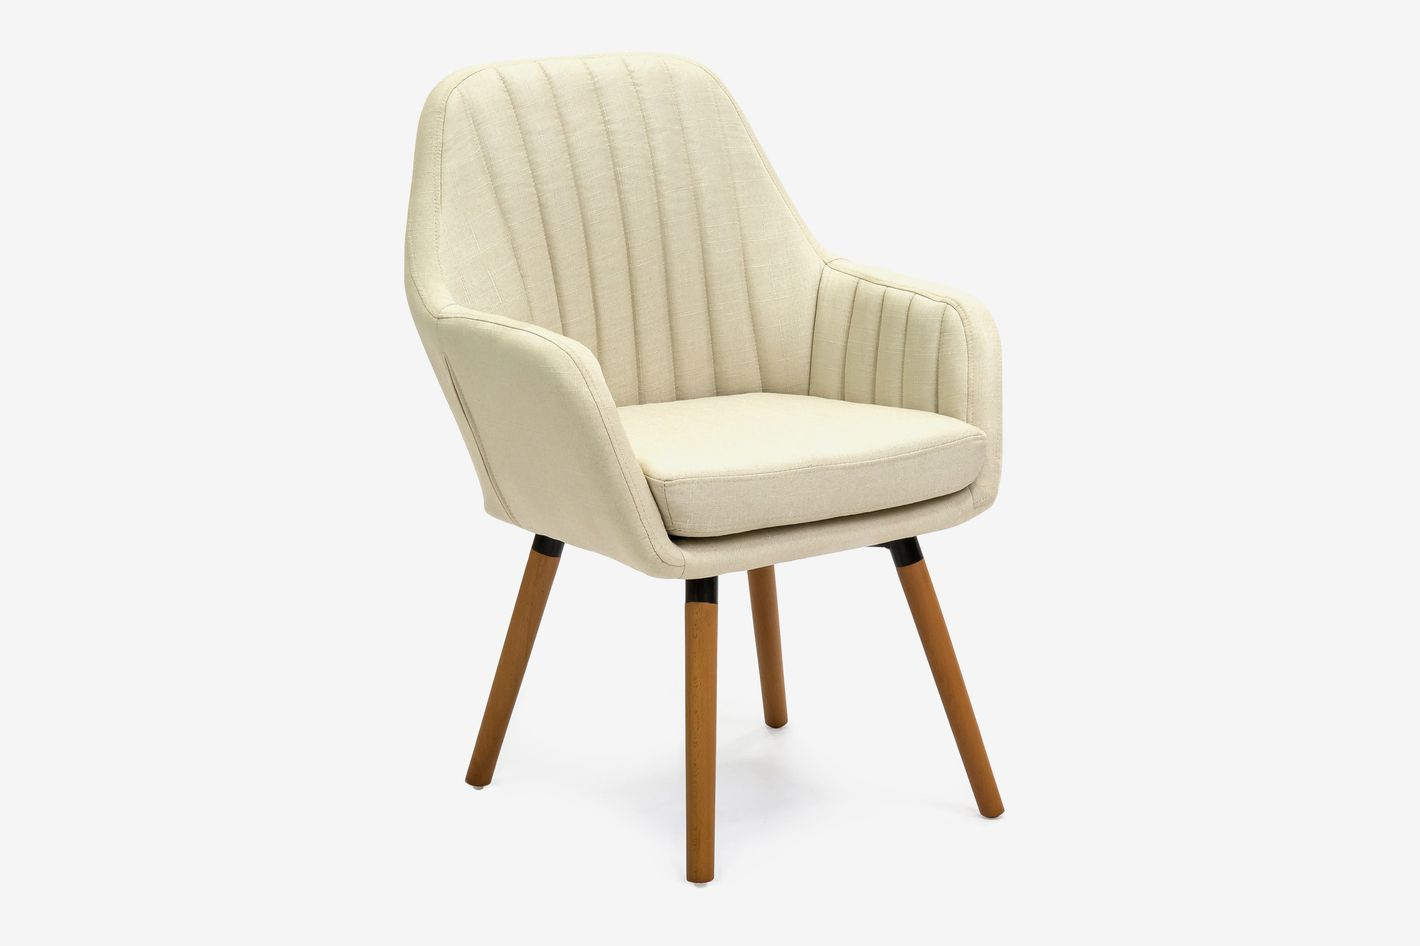 Best Choice Products Mid-Century Modern Line Tufted Accent Chair